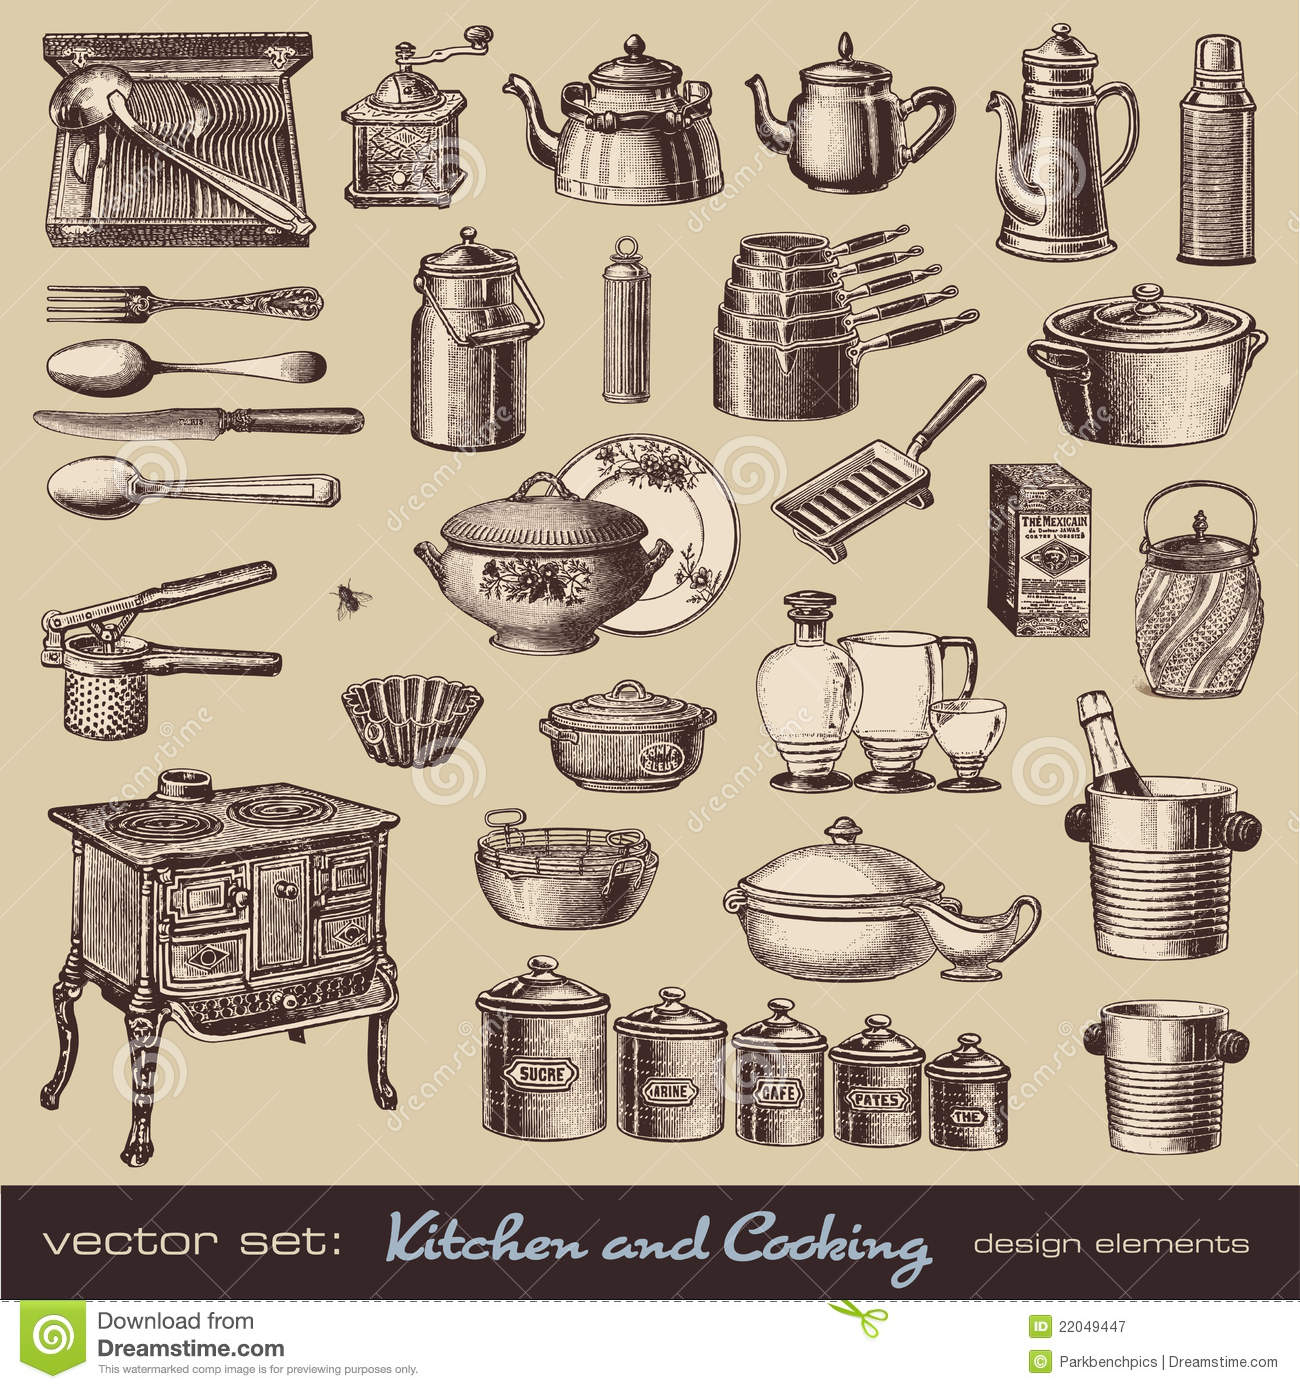 Kitchen And Cooking Design Elements Royalty Free Stock